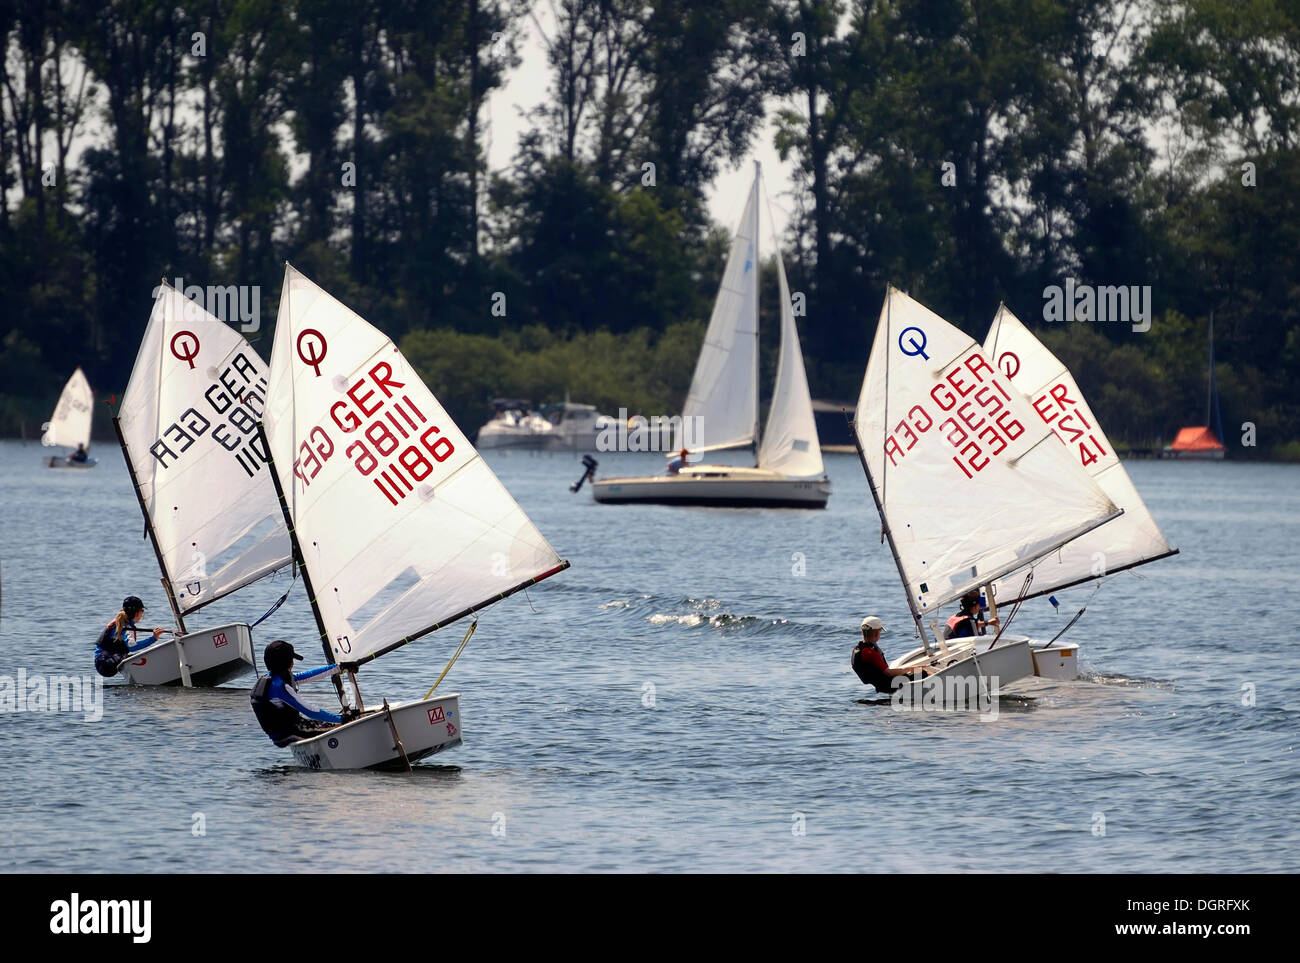 Dinghy sailing for children, optimists on the Mueritz, Mecklenburg Lake District, Mecklenburg-Western Pomerania - Stock Image